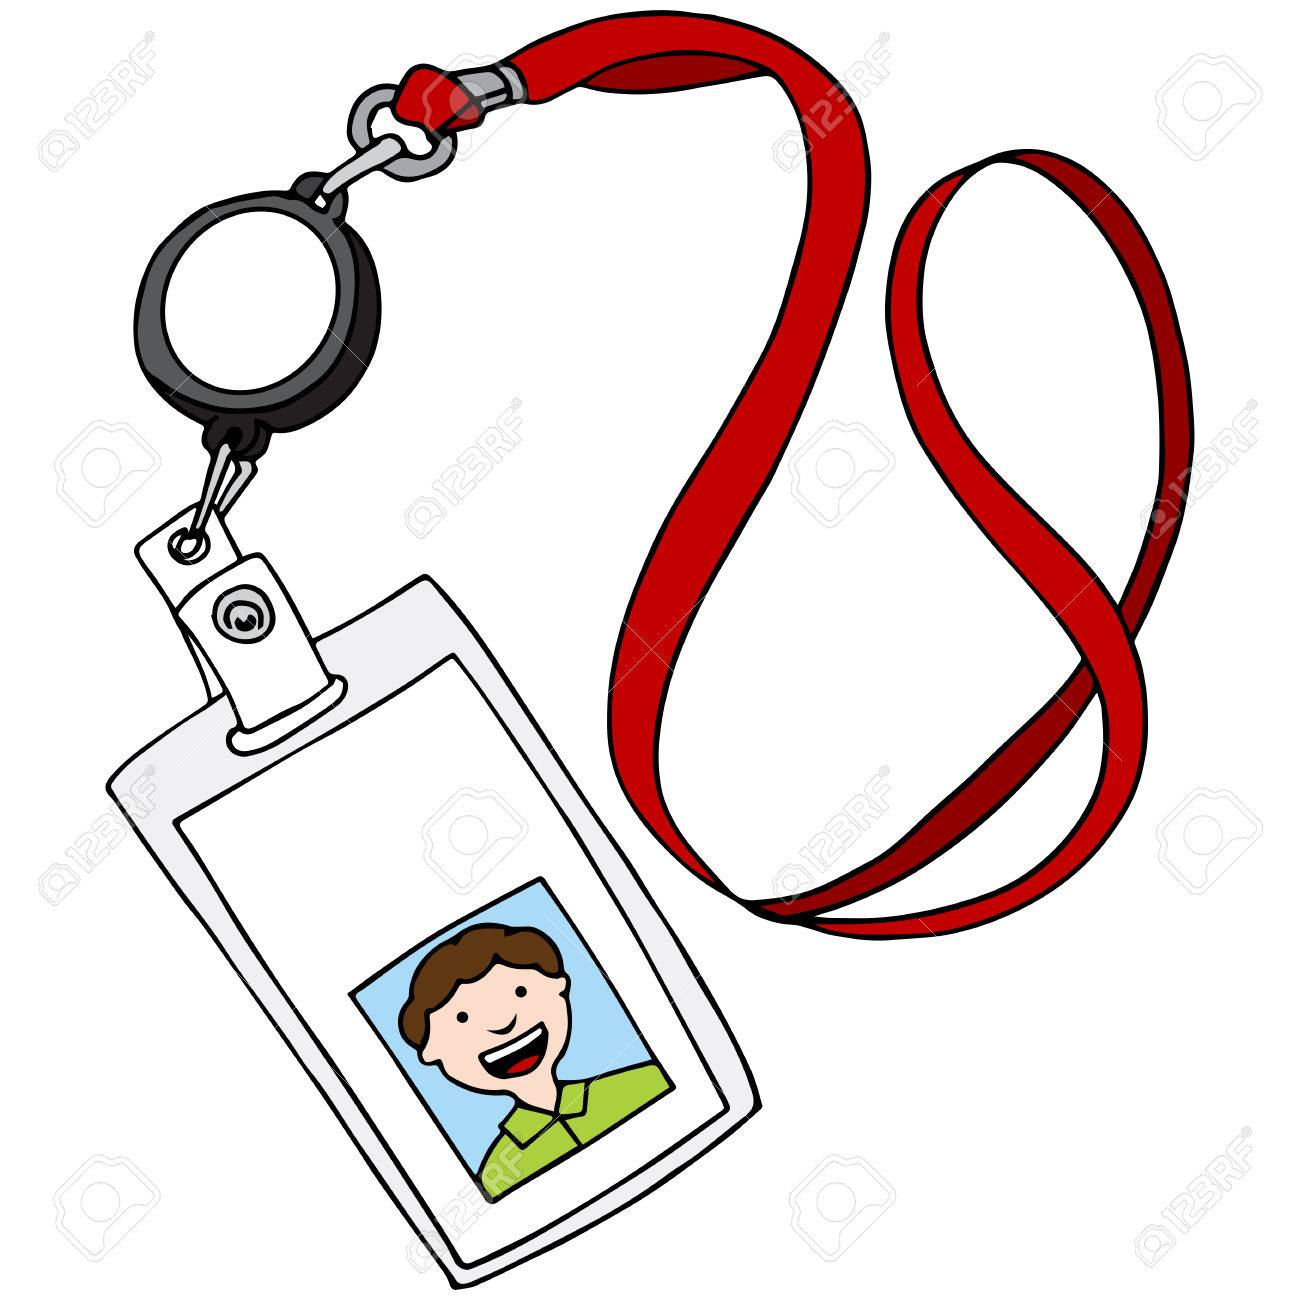 An image of a lanyard id identification badge..